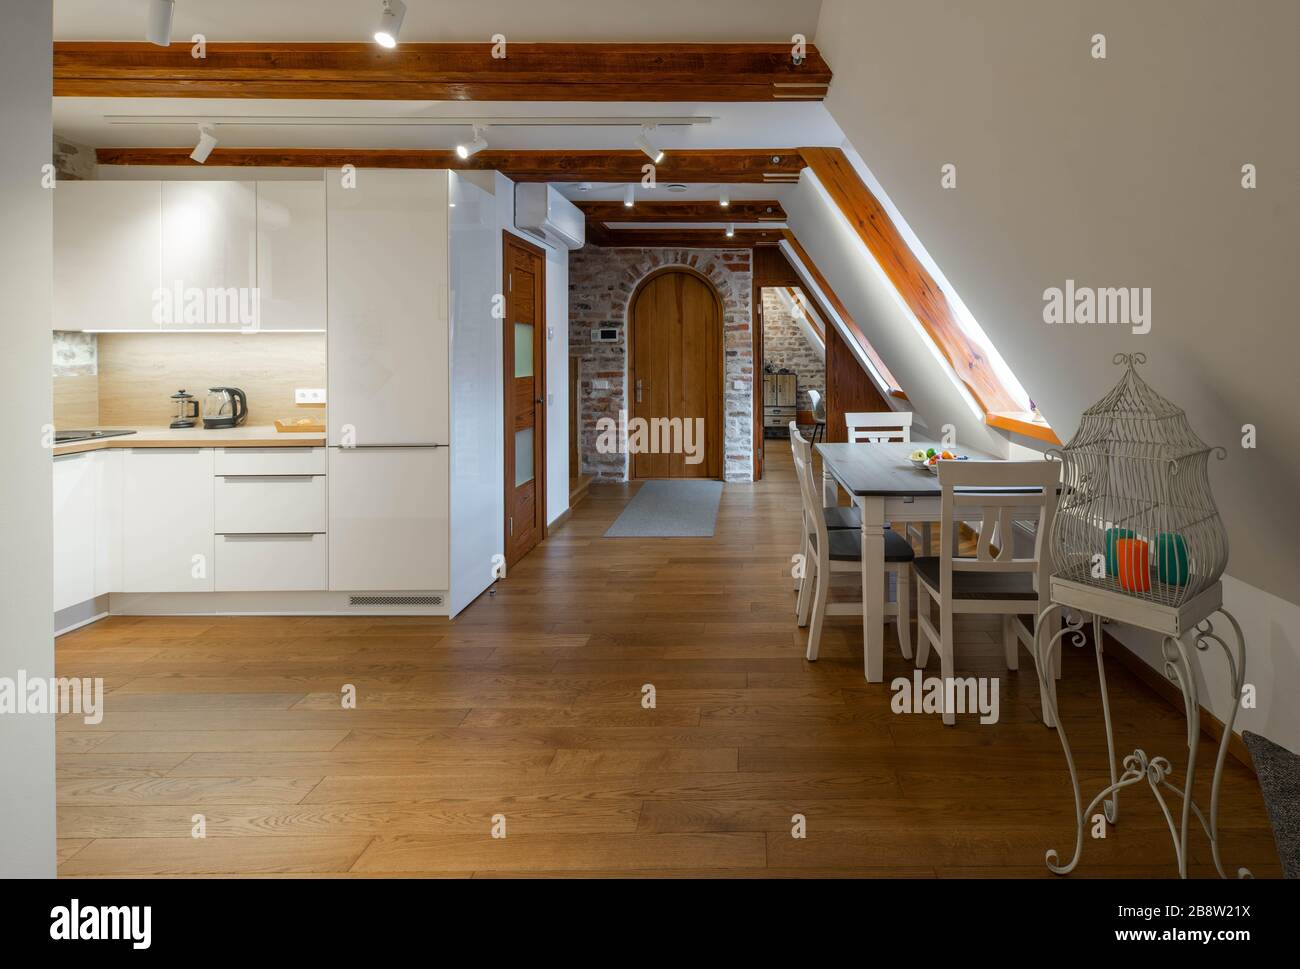 Modern Wooden Loft Interior Of Apartment Entrance Hall White Kitchen Set Brick Wall Private House Table And Chairs Stock Photo Alamy